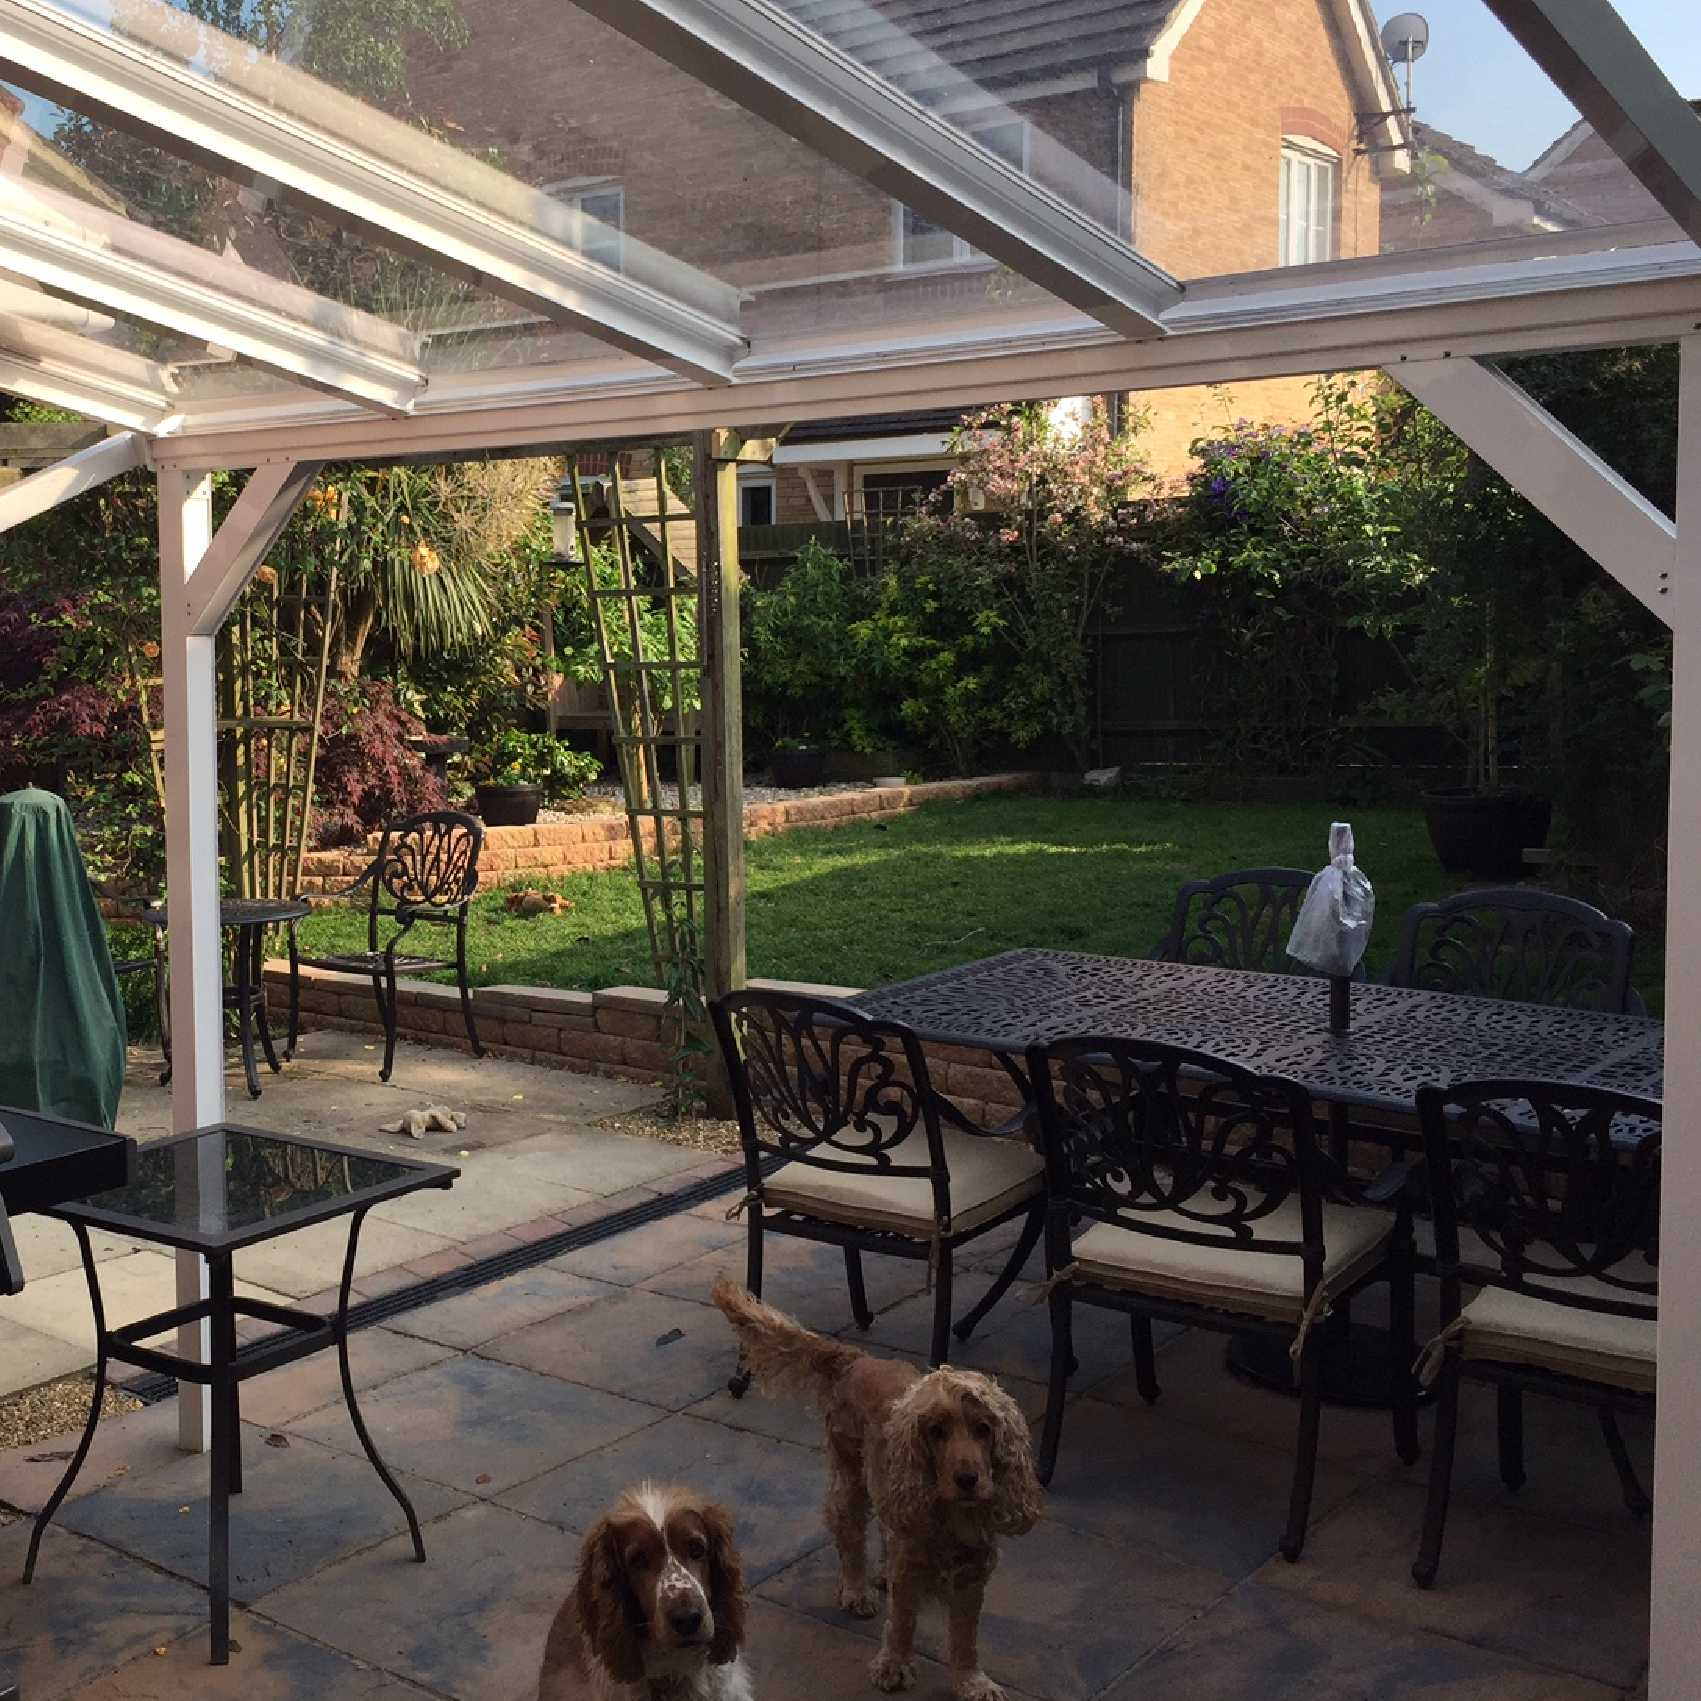 Affordable Omega Smart Lean-To Canopy UNGLAZED for 6mm Glazing - 5.6m (W) x 3.5m (P), (3) Supporting Posts